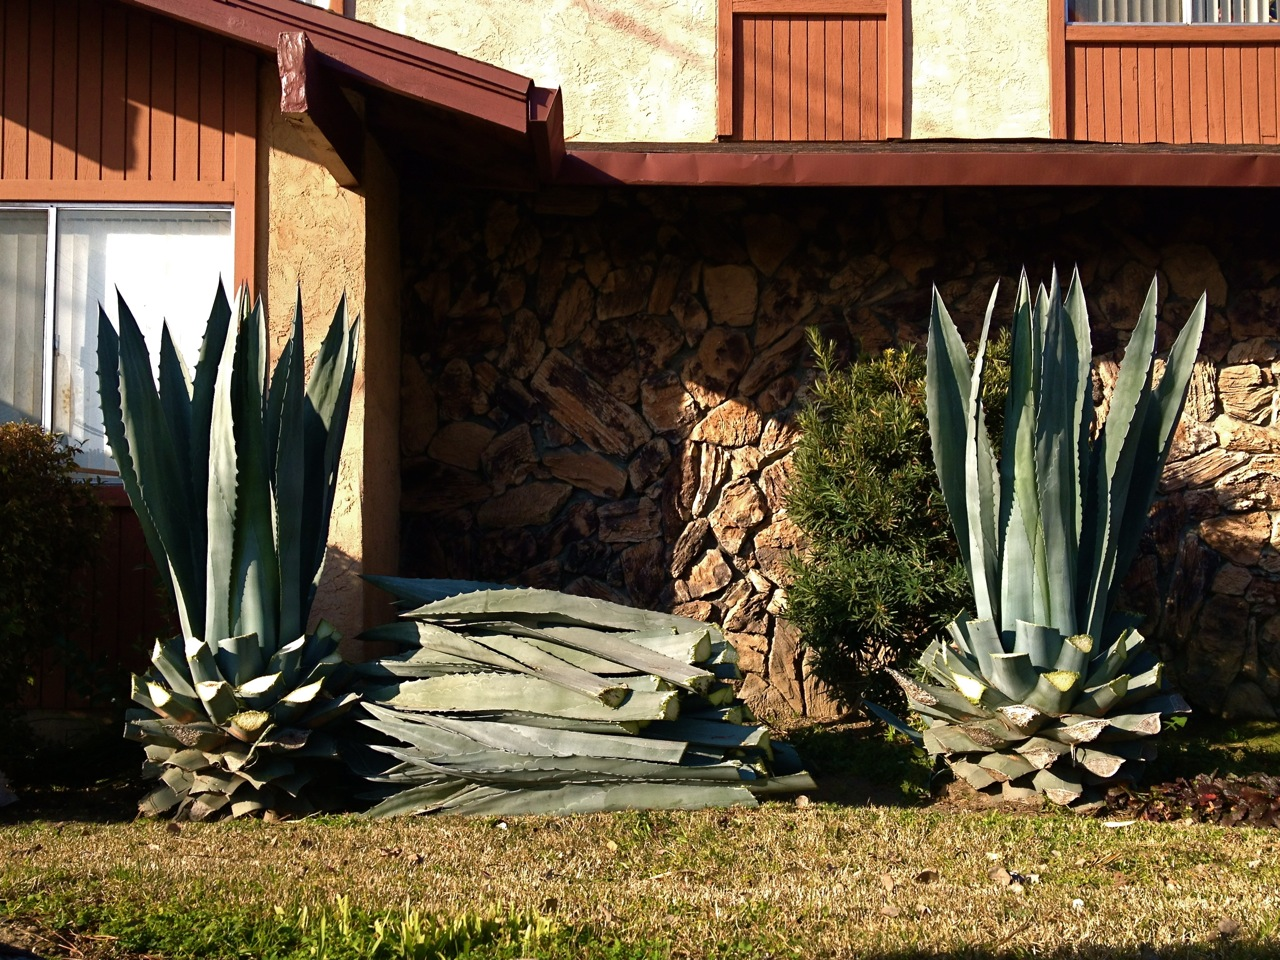 Landscaping Rocks Lodi Ca : Elevation of w century blvd lodi ca usa maplogs